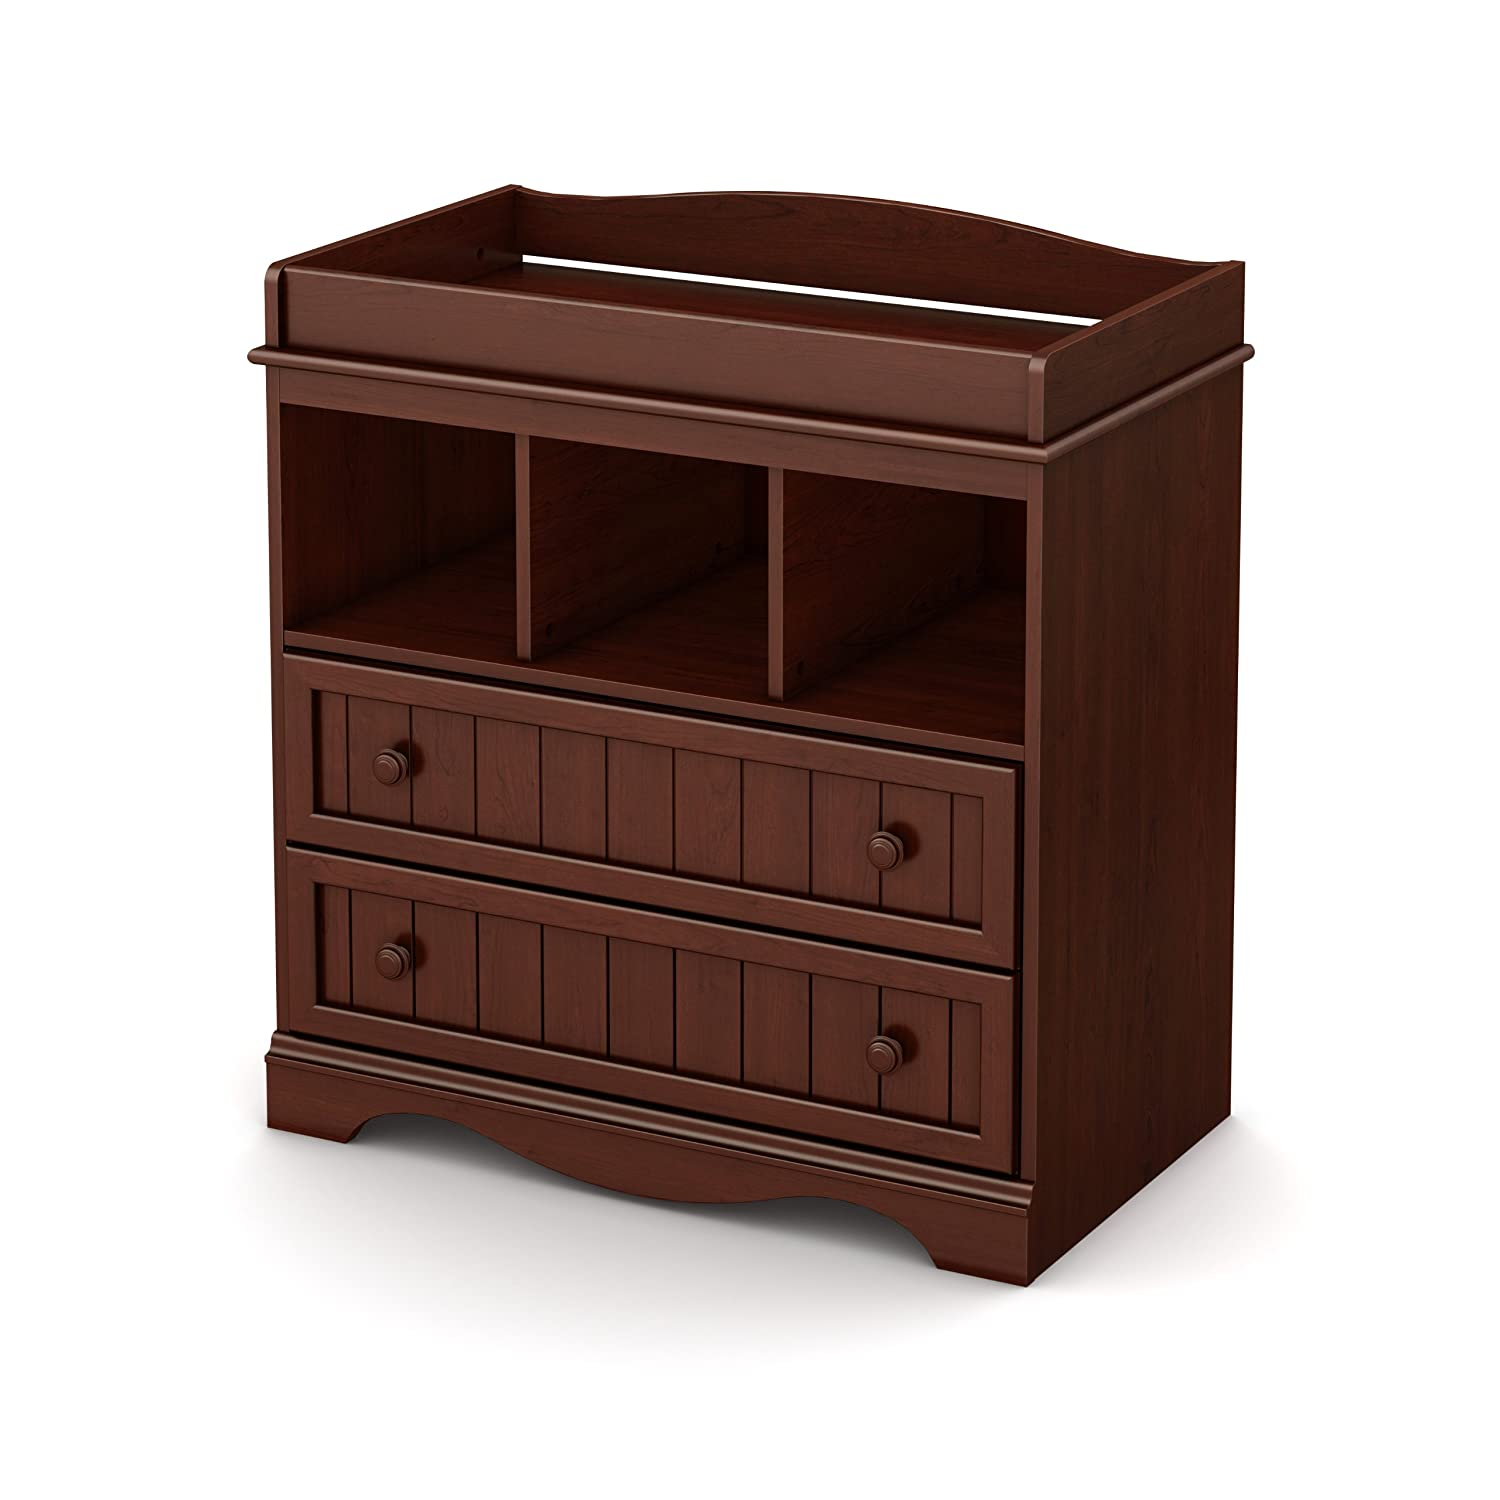 Amazon.com : South Shore Savannah 2 Drawer Changing Table, Royal Cherry :  Cherry Changing Table And Dresser : Baby Design